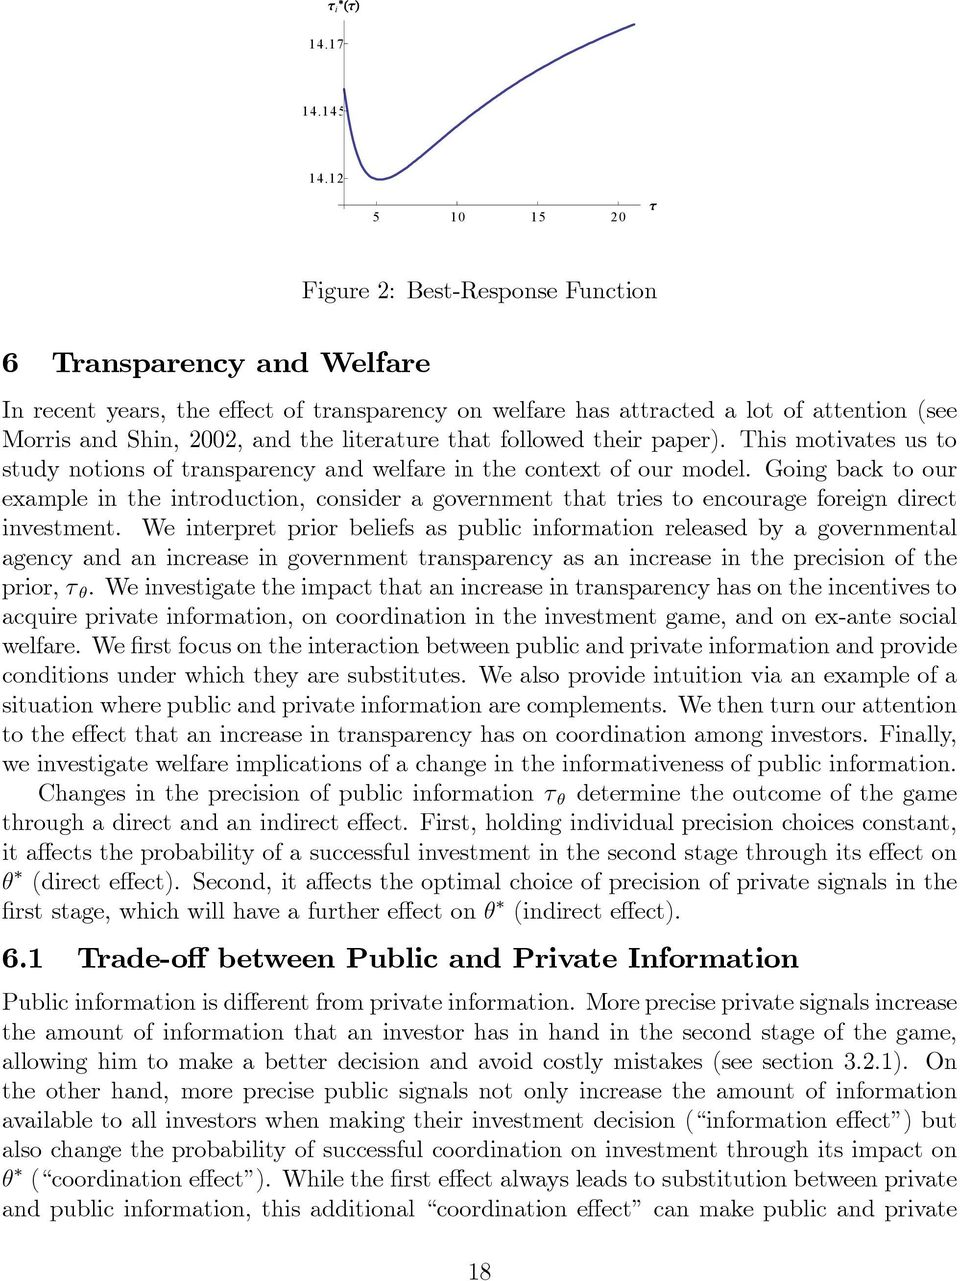 followed ther paper). Ths motvates us to study notons of transparency and welfare n the context of our model.